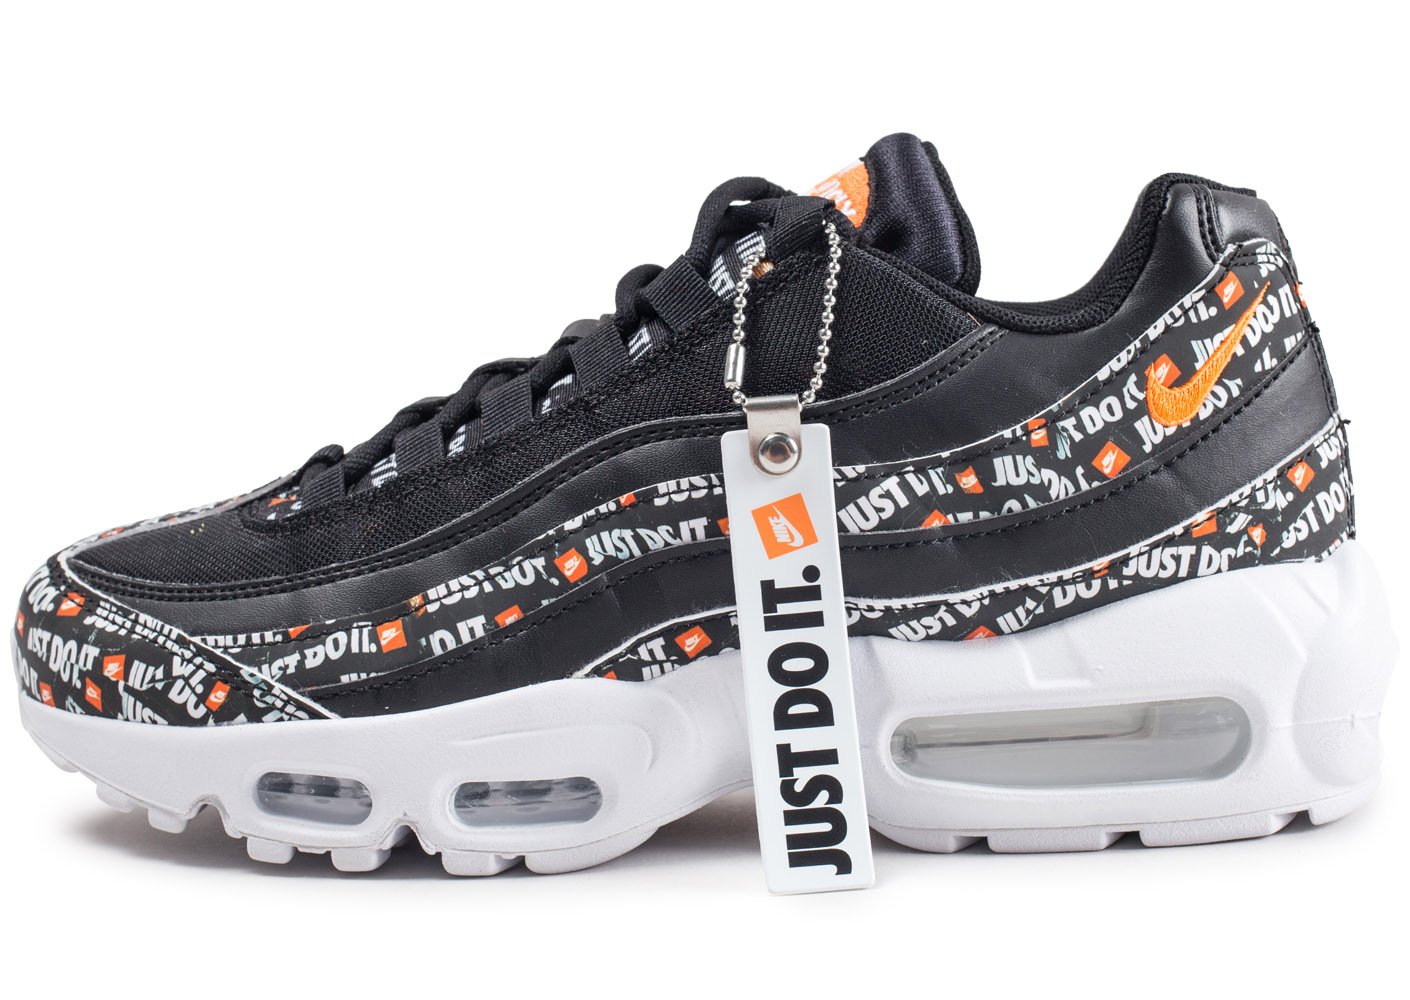 Air Max 95 Just Do It Noire